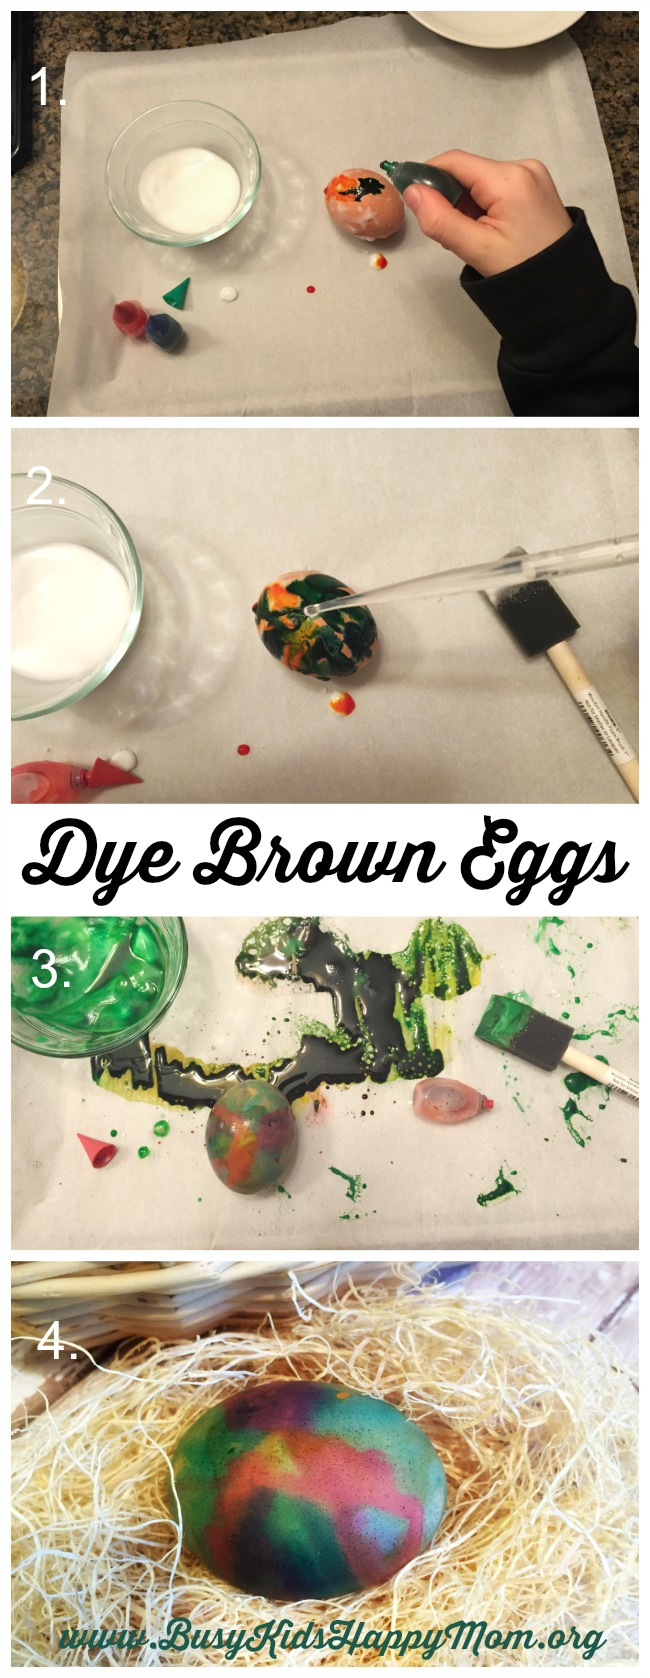 How to Dye Brown Eggs steps